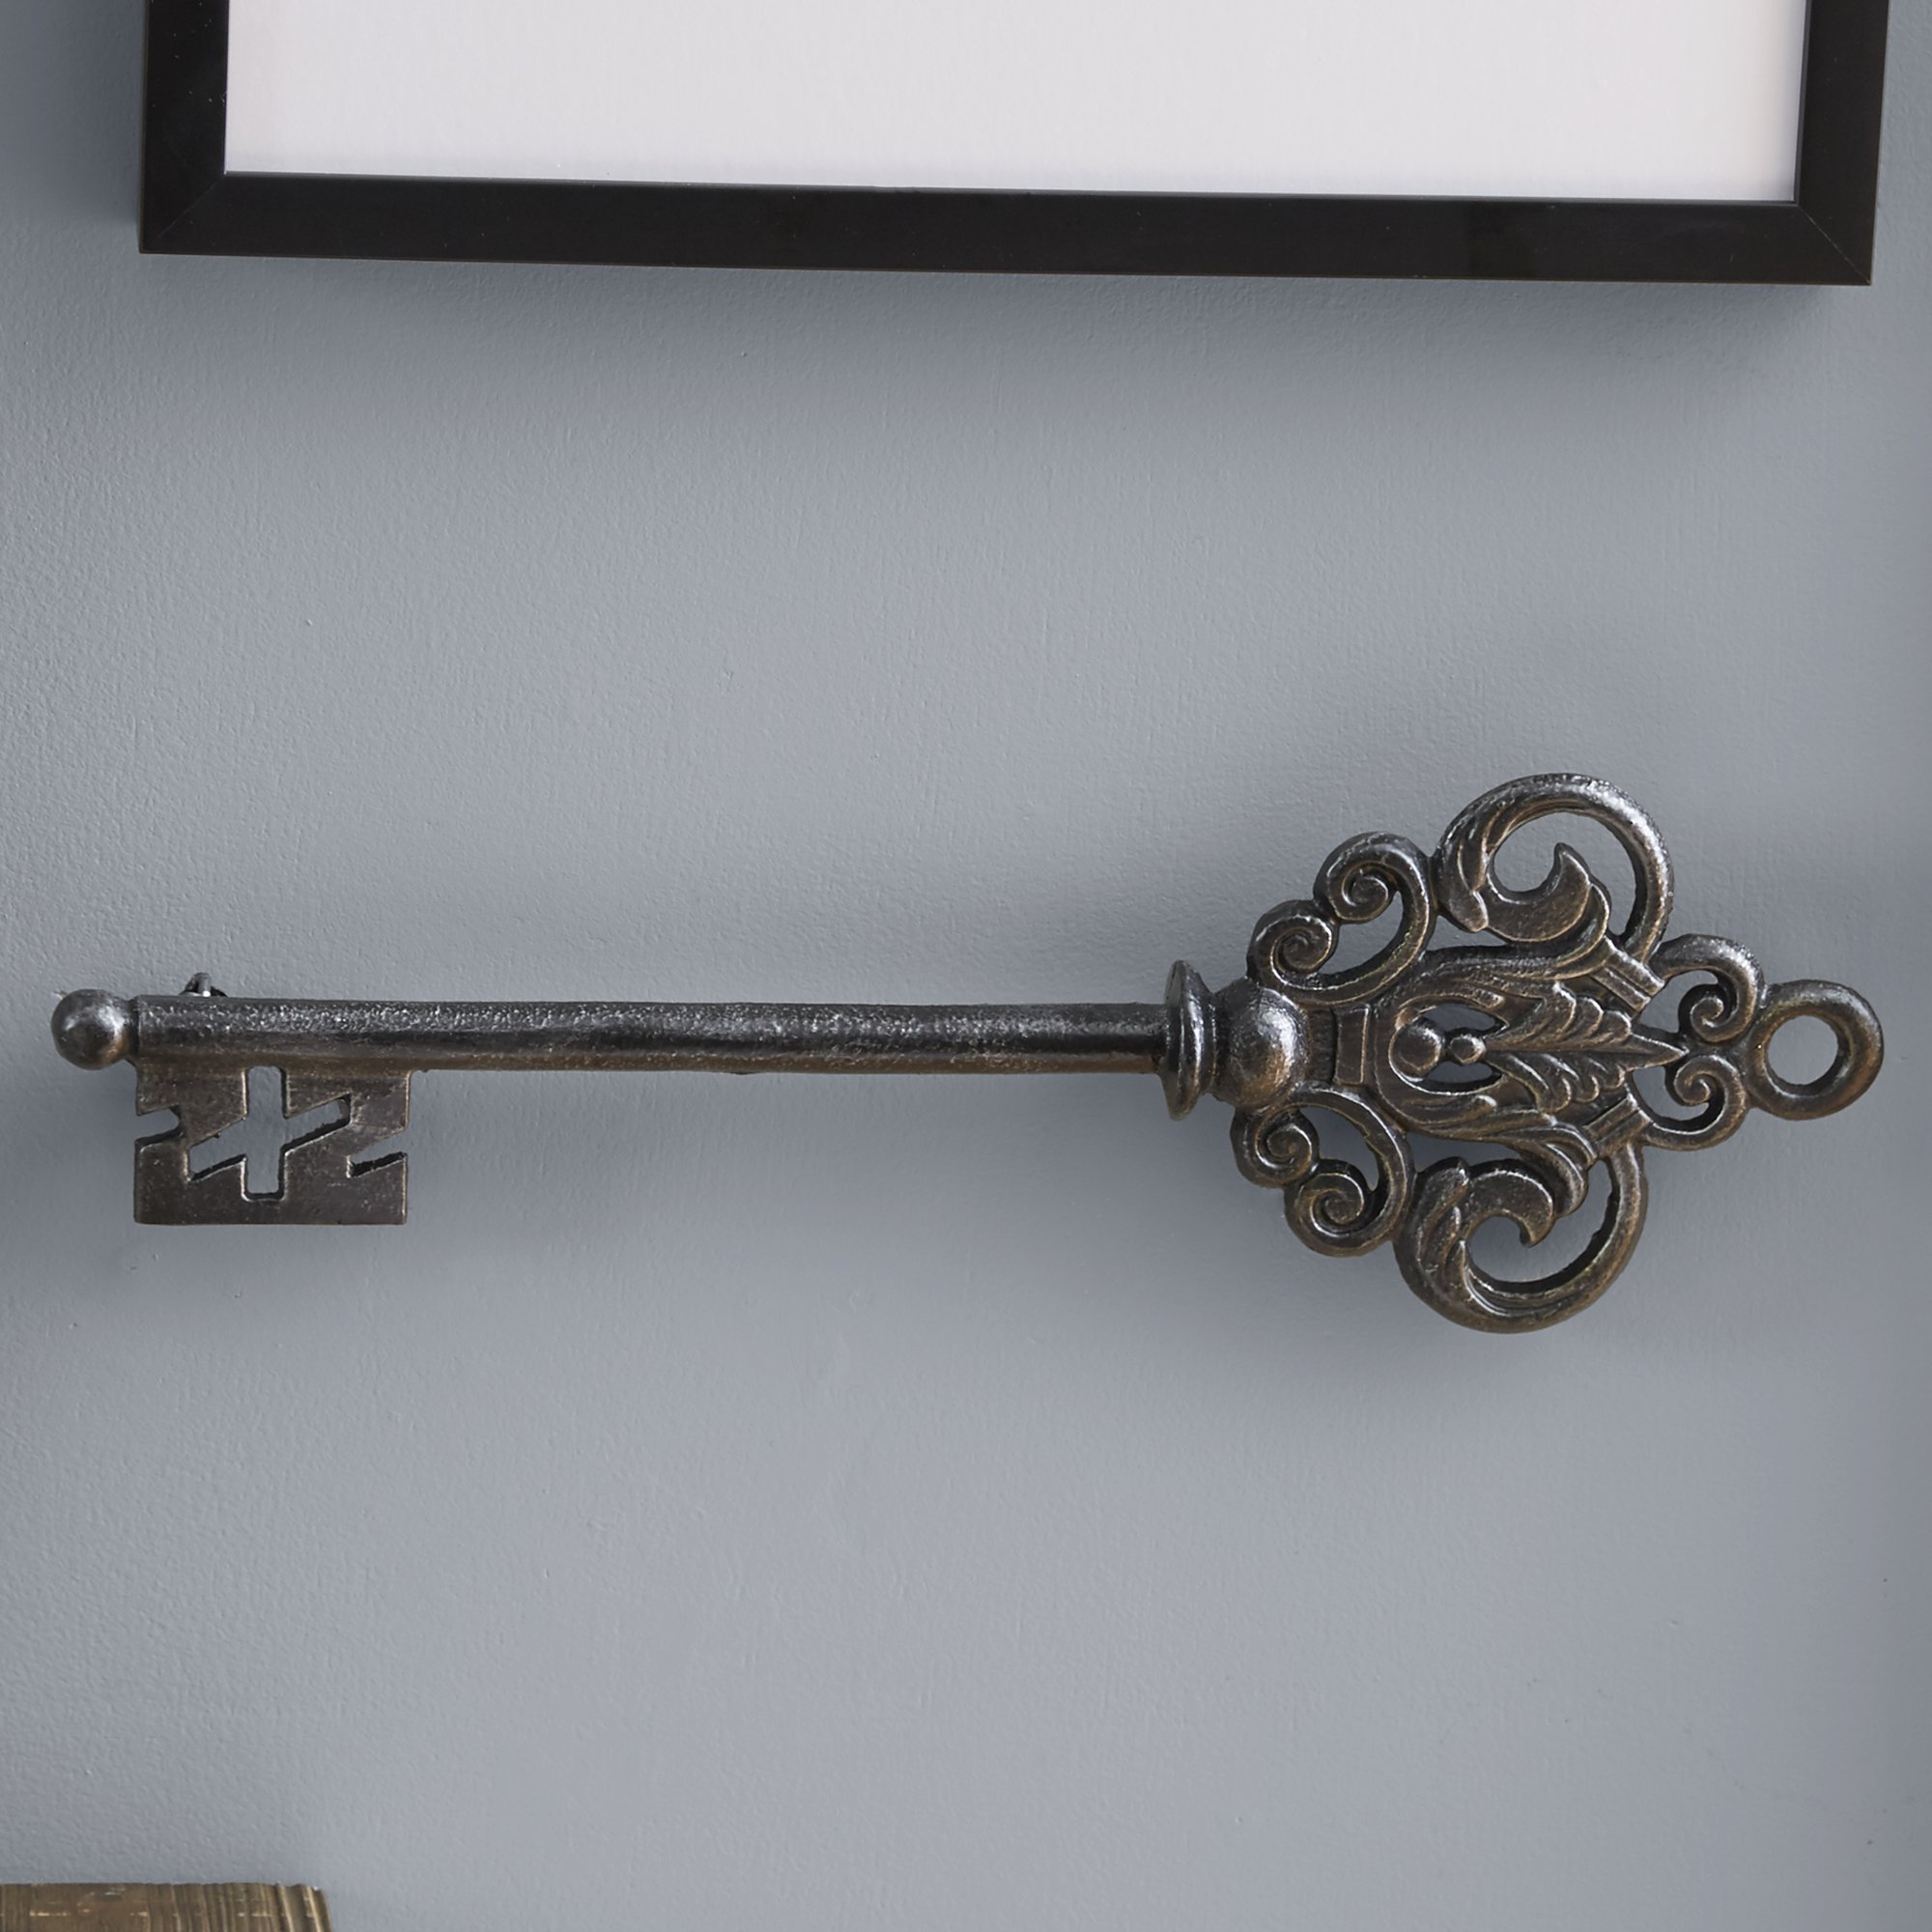 Metal Key Wall Decor – Pmpresssecretariat For Trendy Black Metal Key Wall Decor (View 12 of 20)